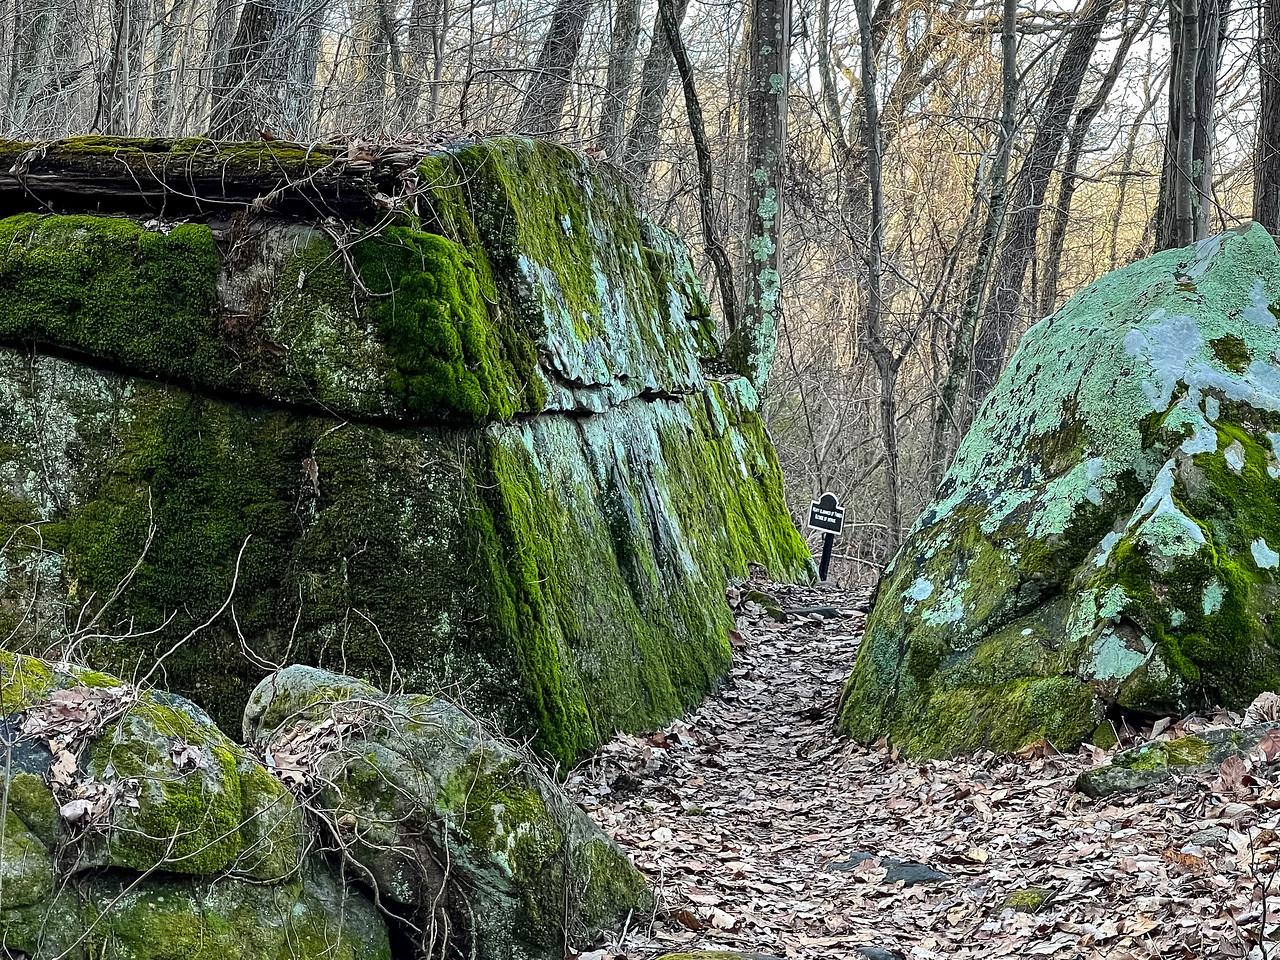 The trail passing between two huge, mossy boulders.